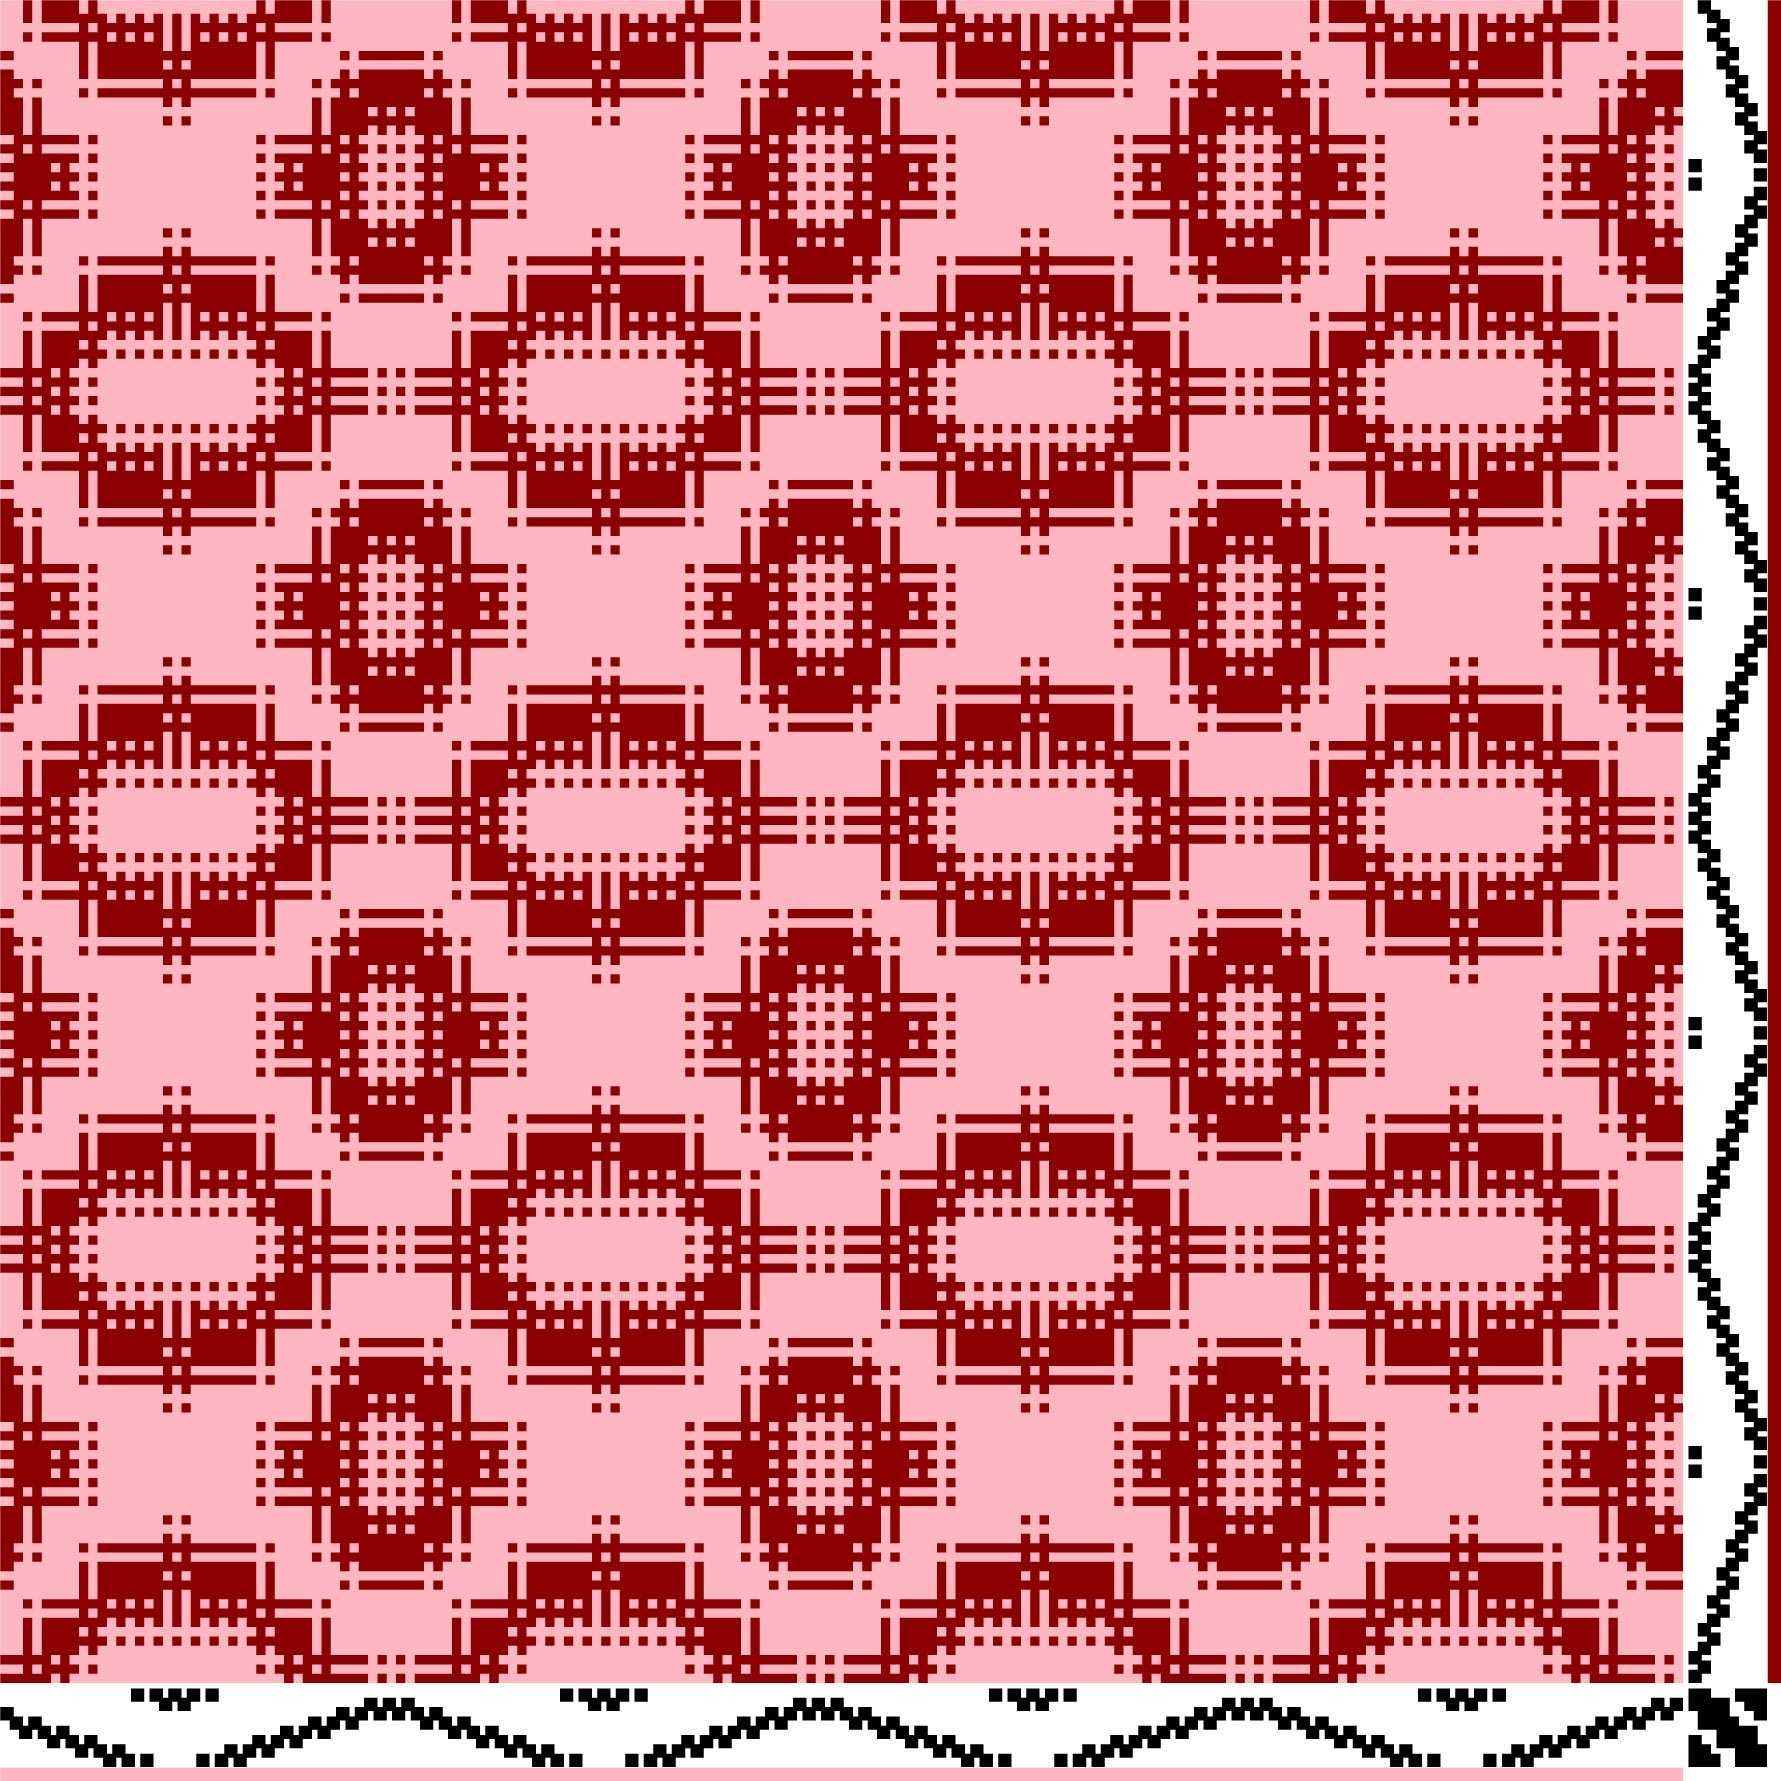 Digital Weaving 1-13